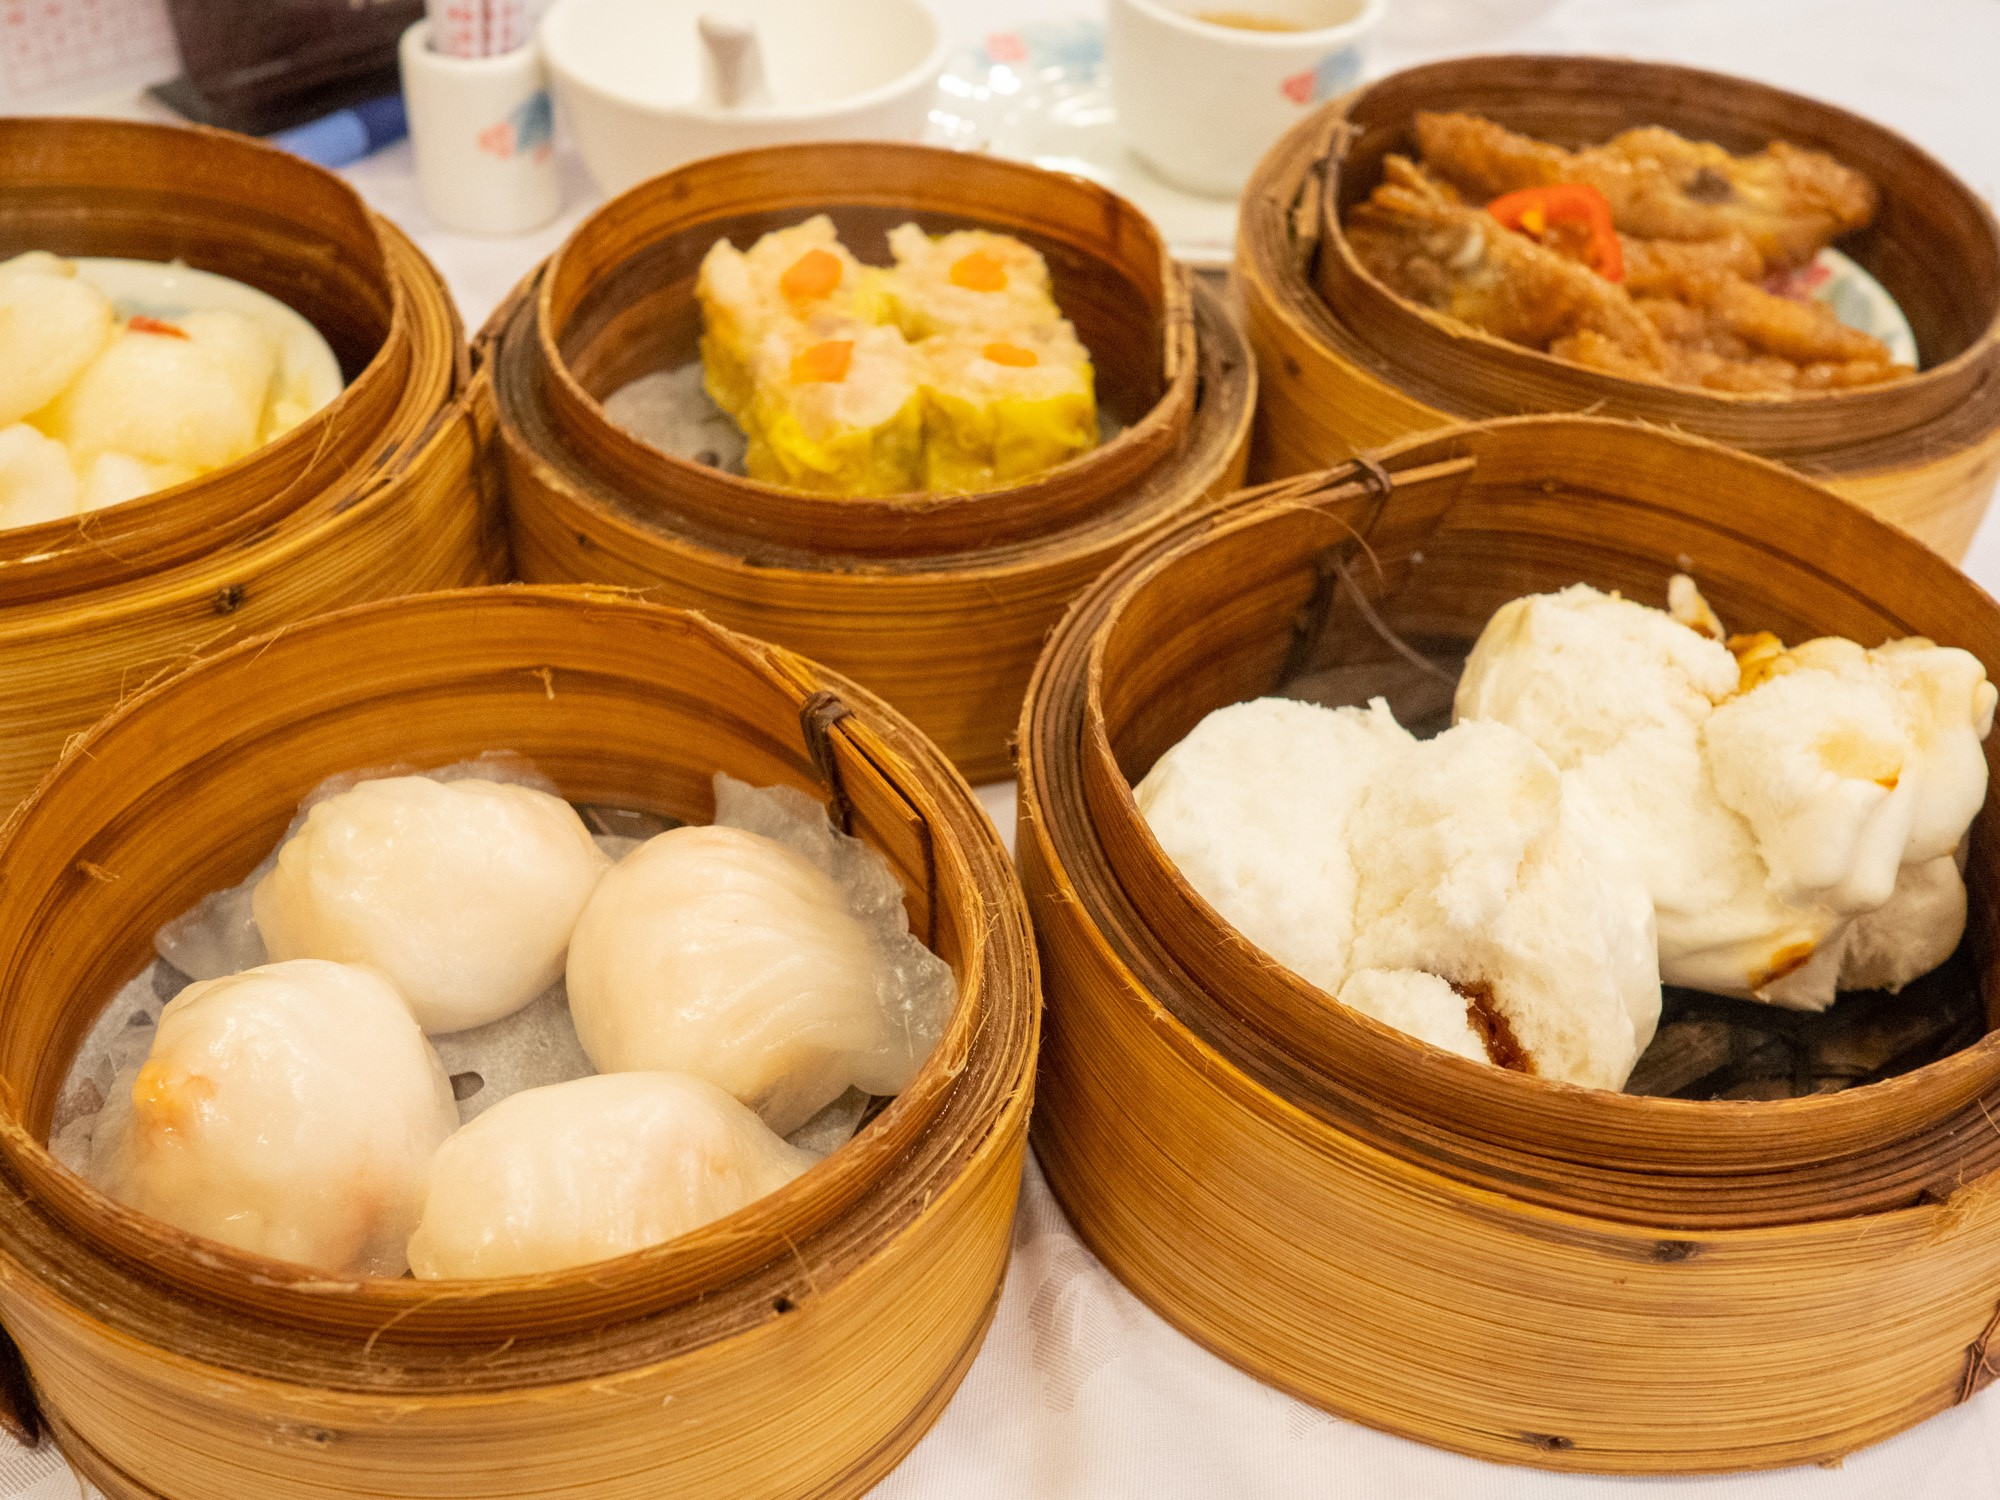 Fungshing restaurant is one of the best and most local style hong kong dim sum restaurants